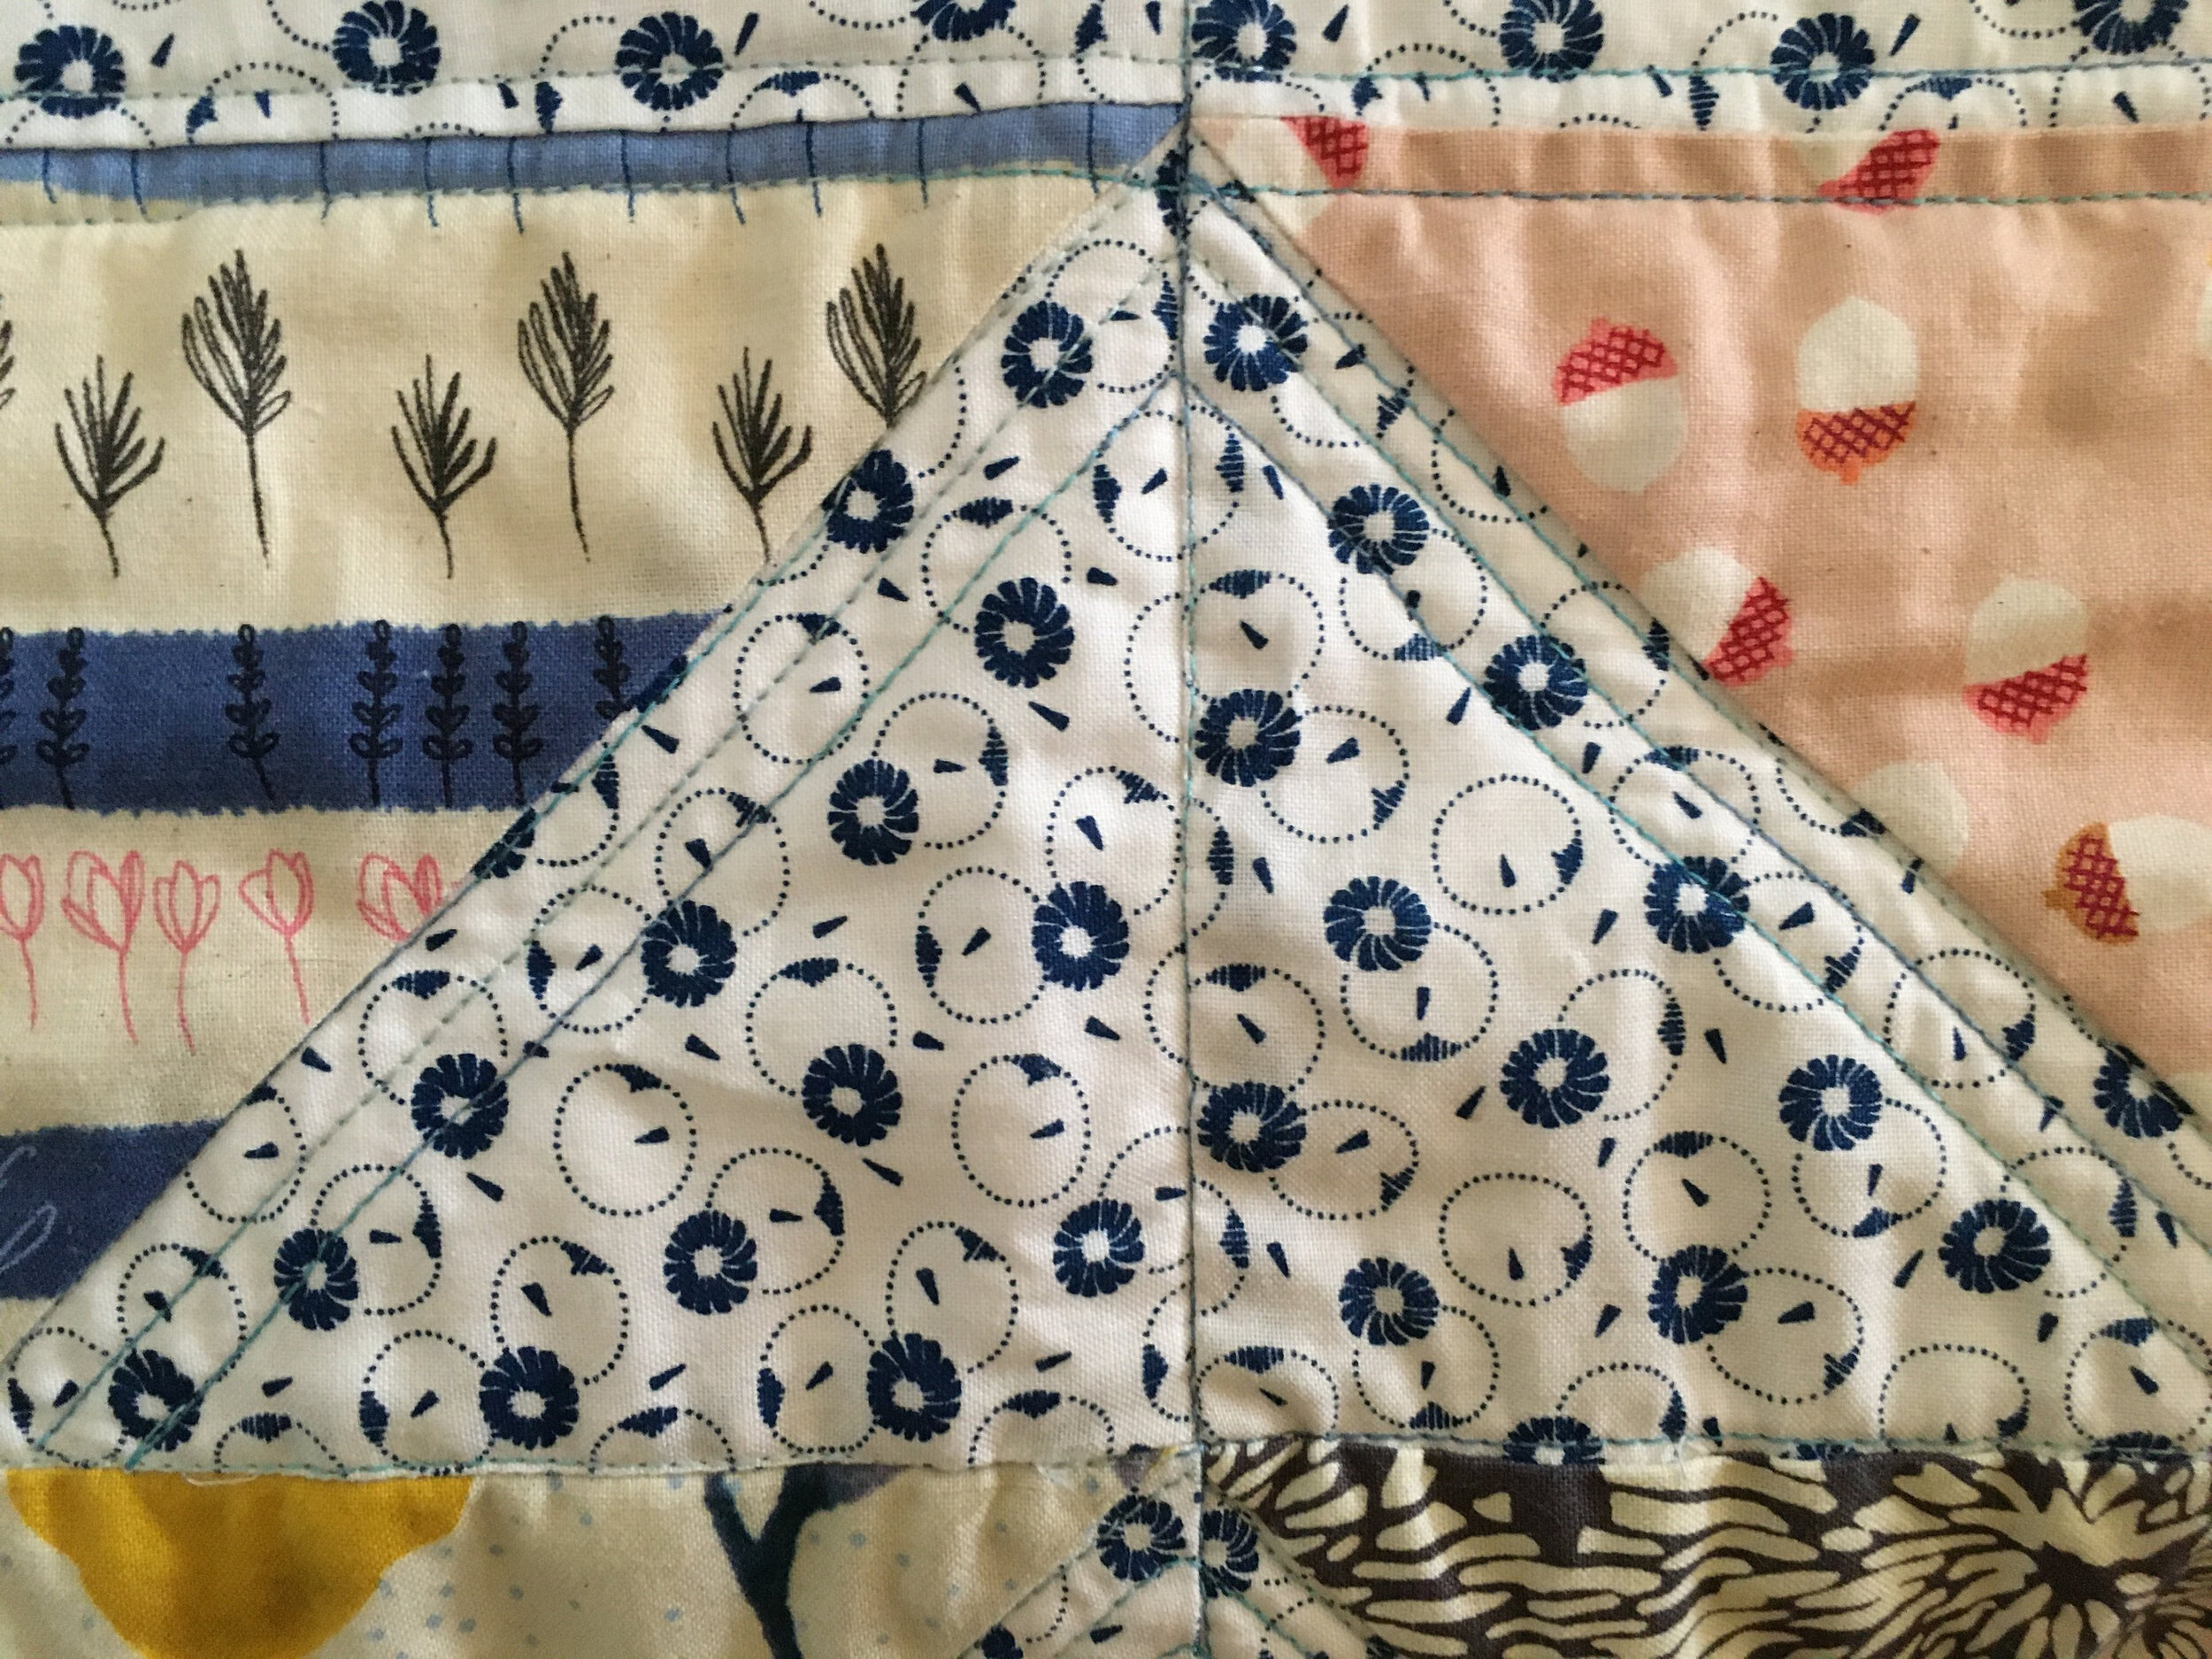 Walking Foot Stitching and Stitch-in-the-Ditch (sort of!)